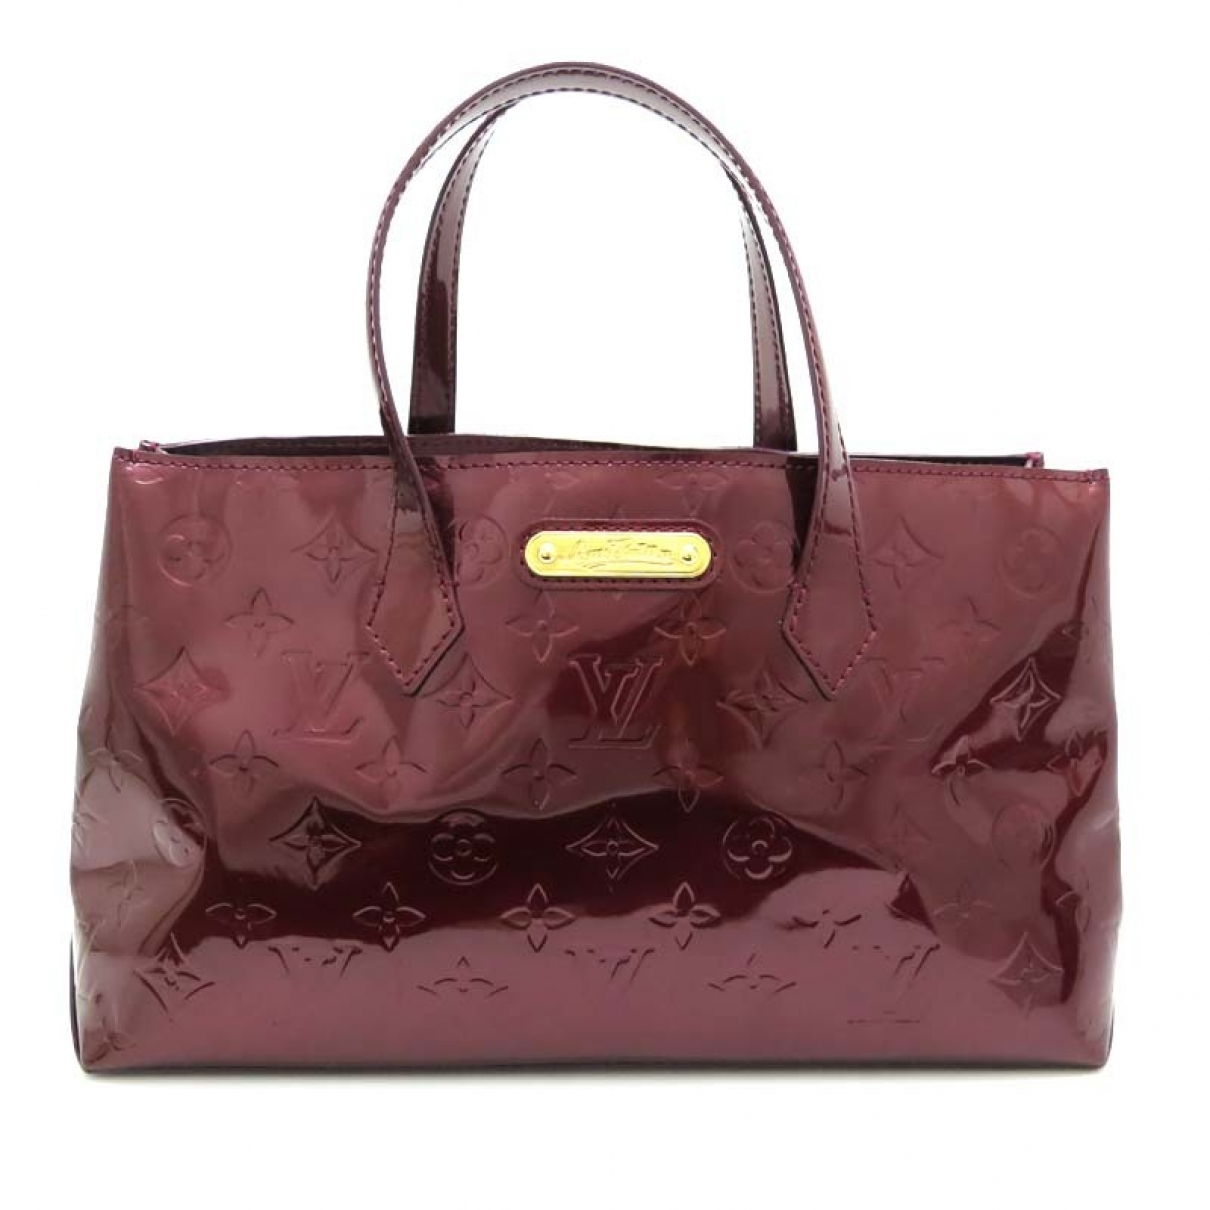 Louis Vuitton Wilshire Red Patent leather handbag for Women \N